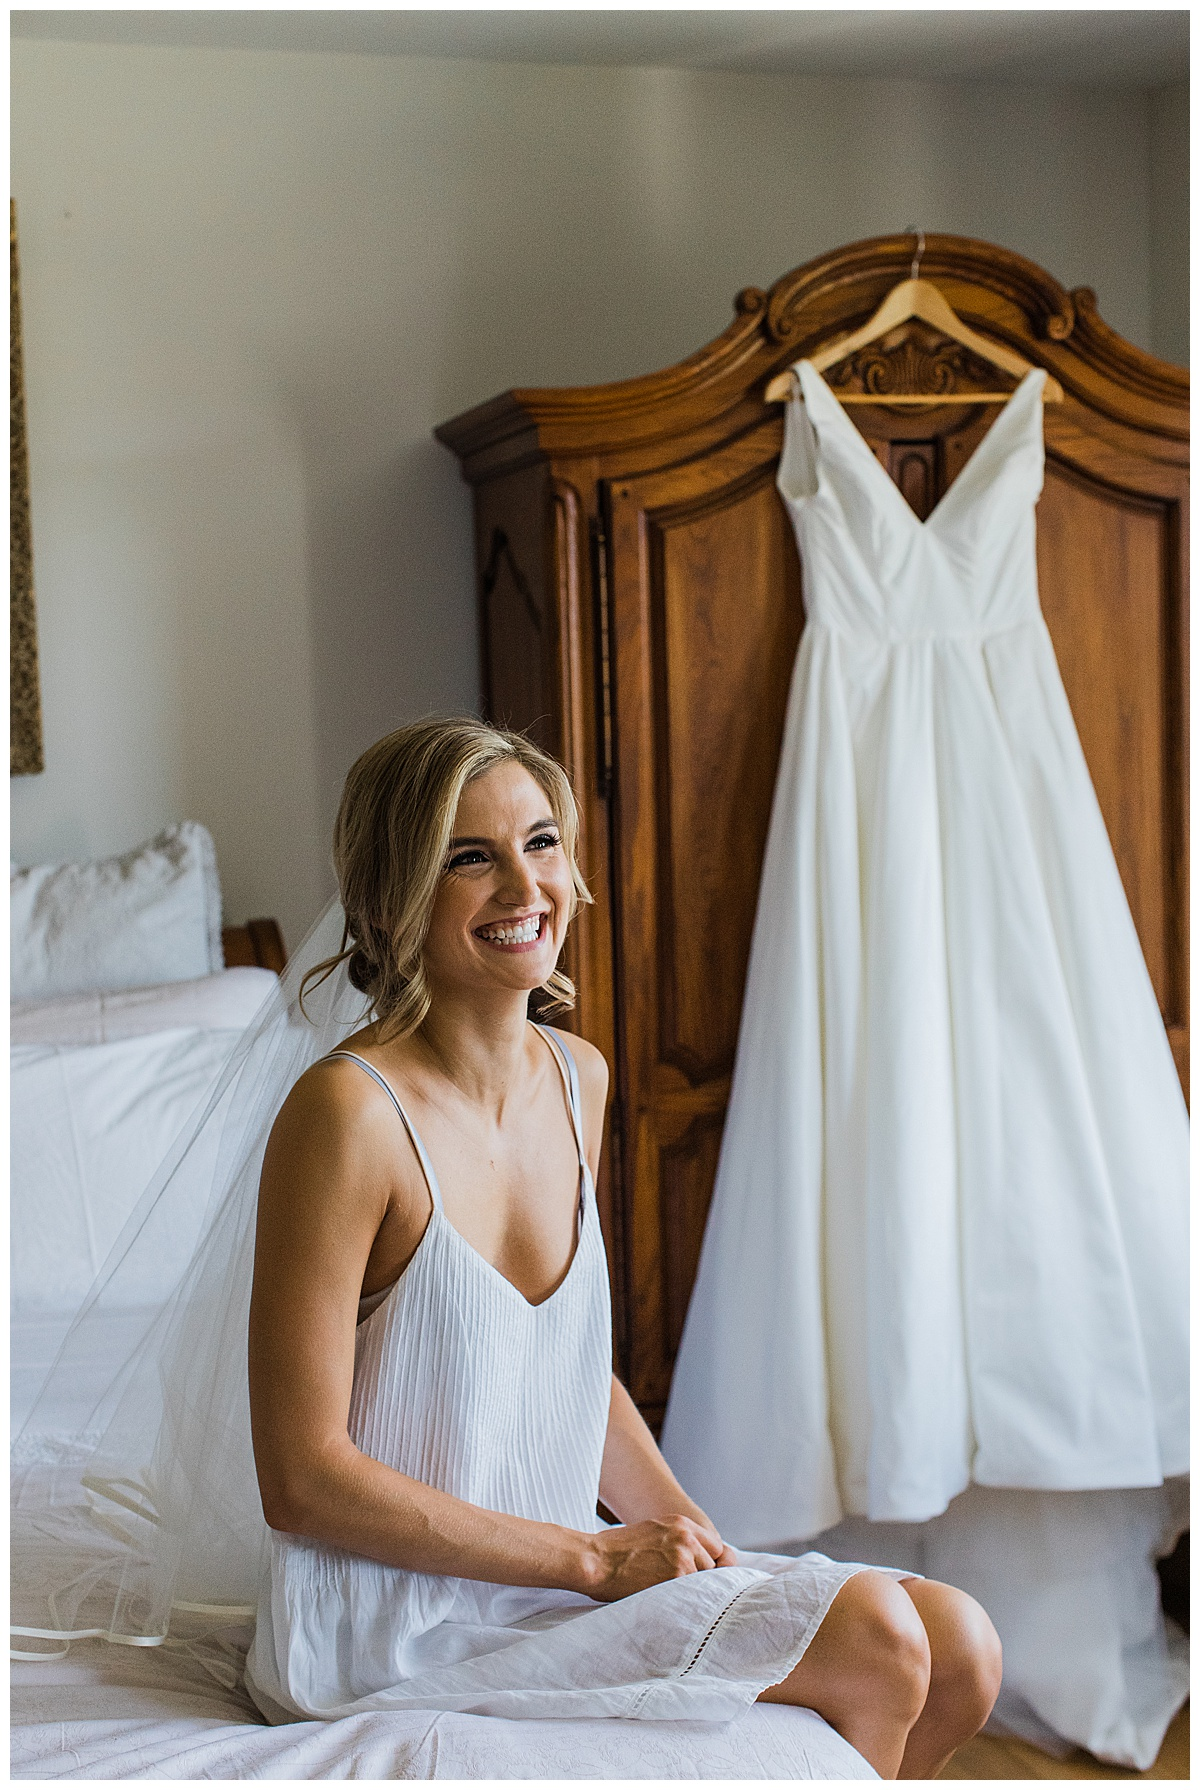 Bride sitting on bed smiling big with gown hanging on amour behind her  Georgetown, Ontario wedding   Toronto wedding photographer  3photography